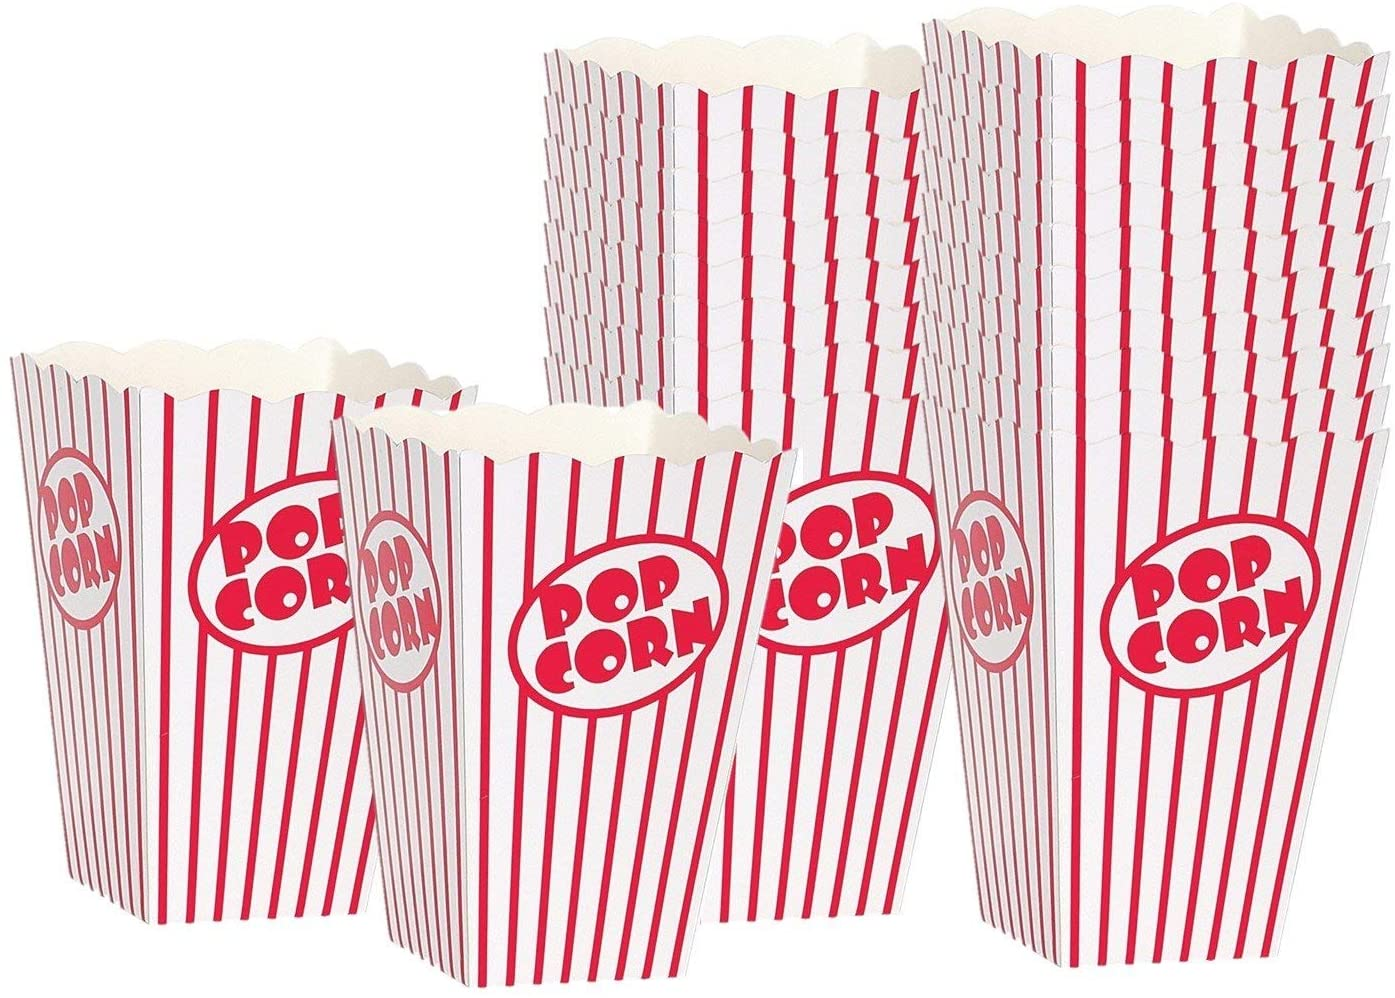 Movie theater popcorn boxes make Oscars night a little more fun at home with the kids